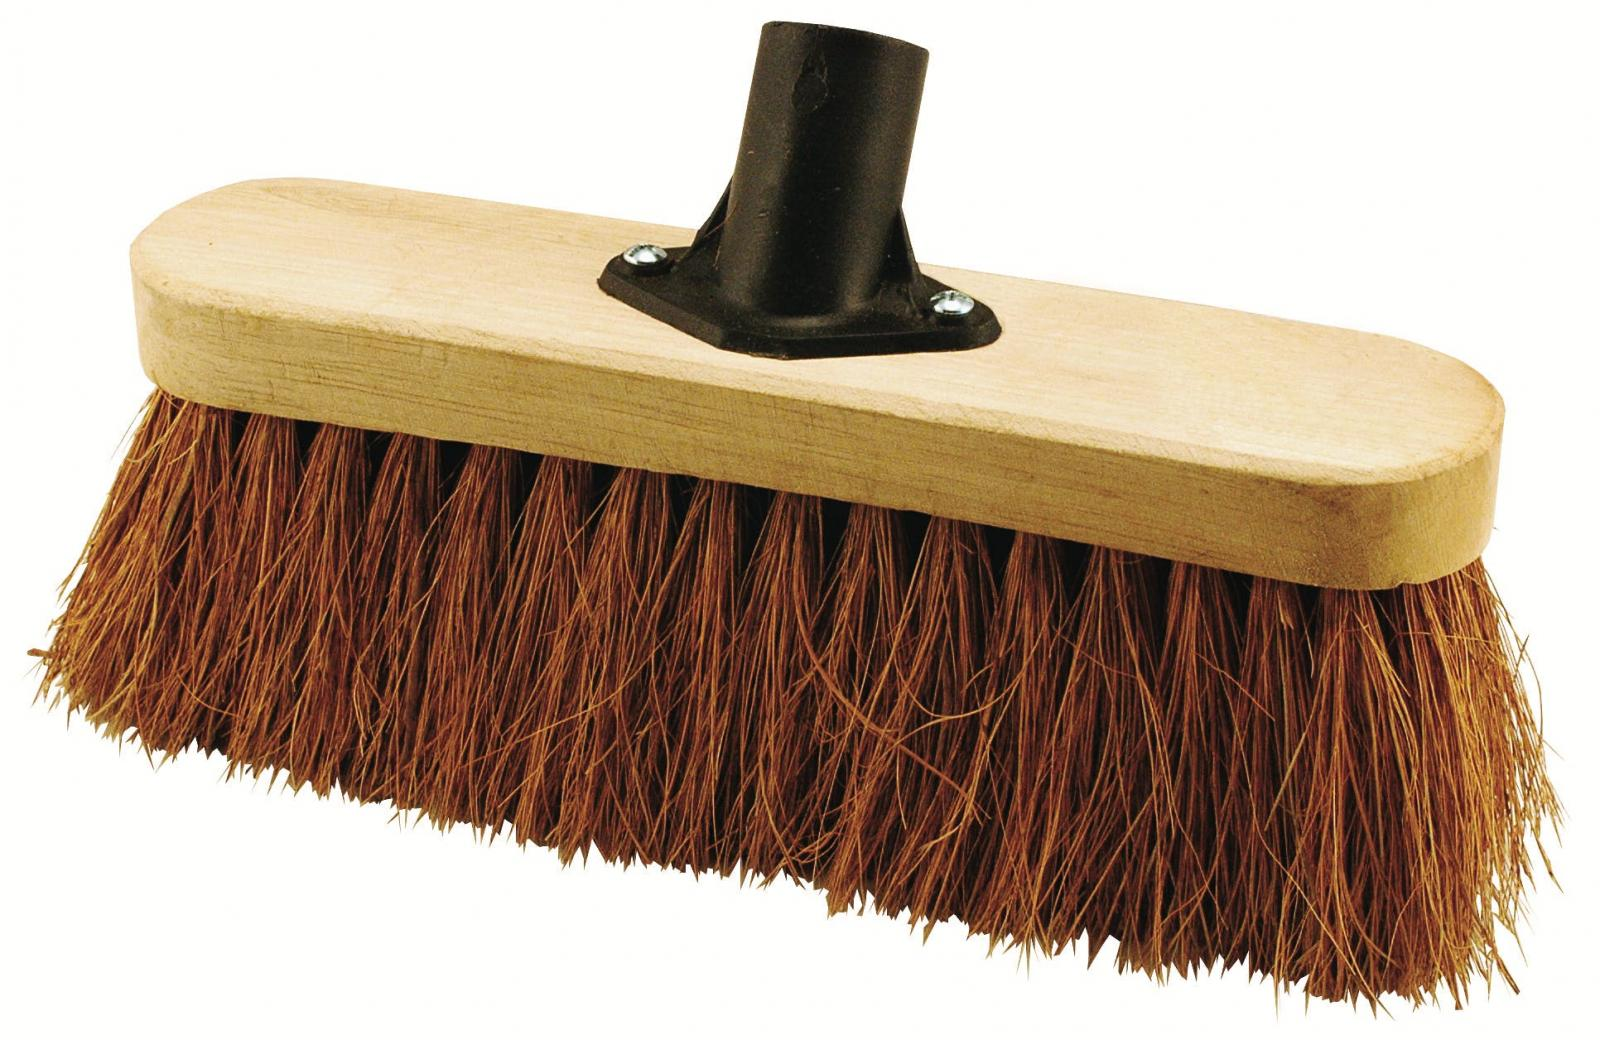 25cm Coconut Broom – Now Only £4.00